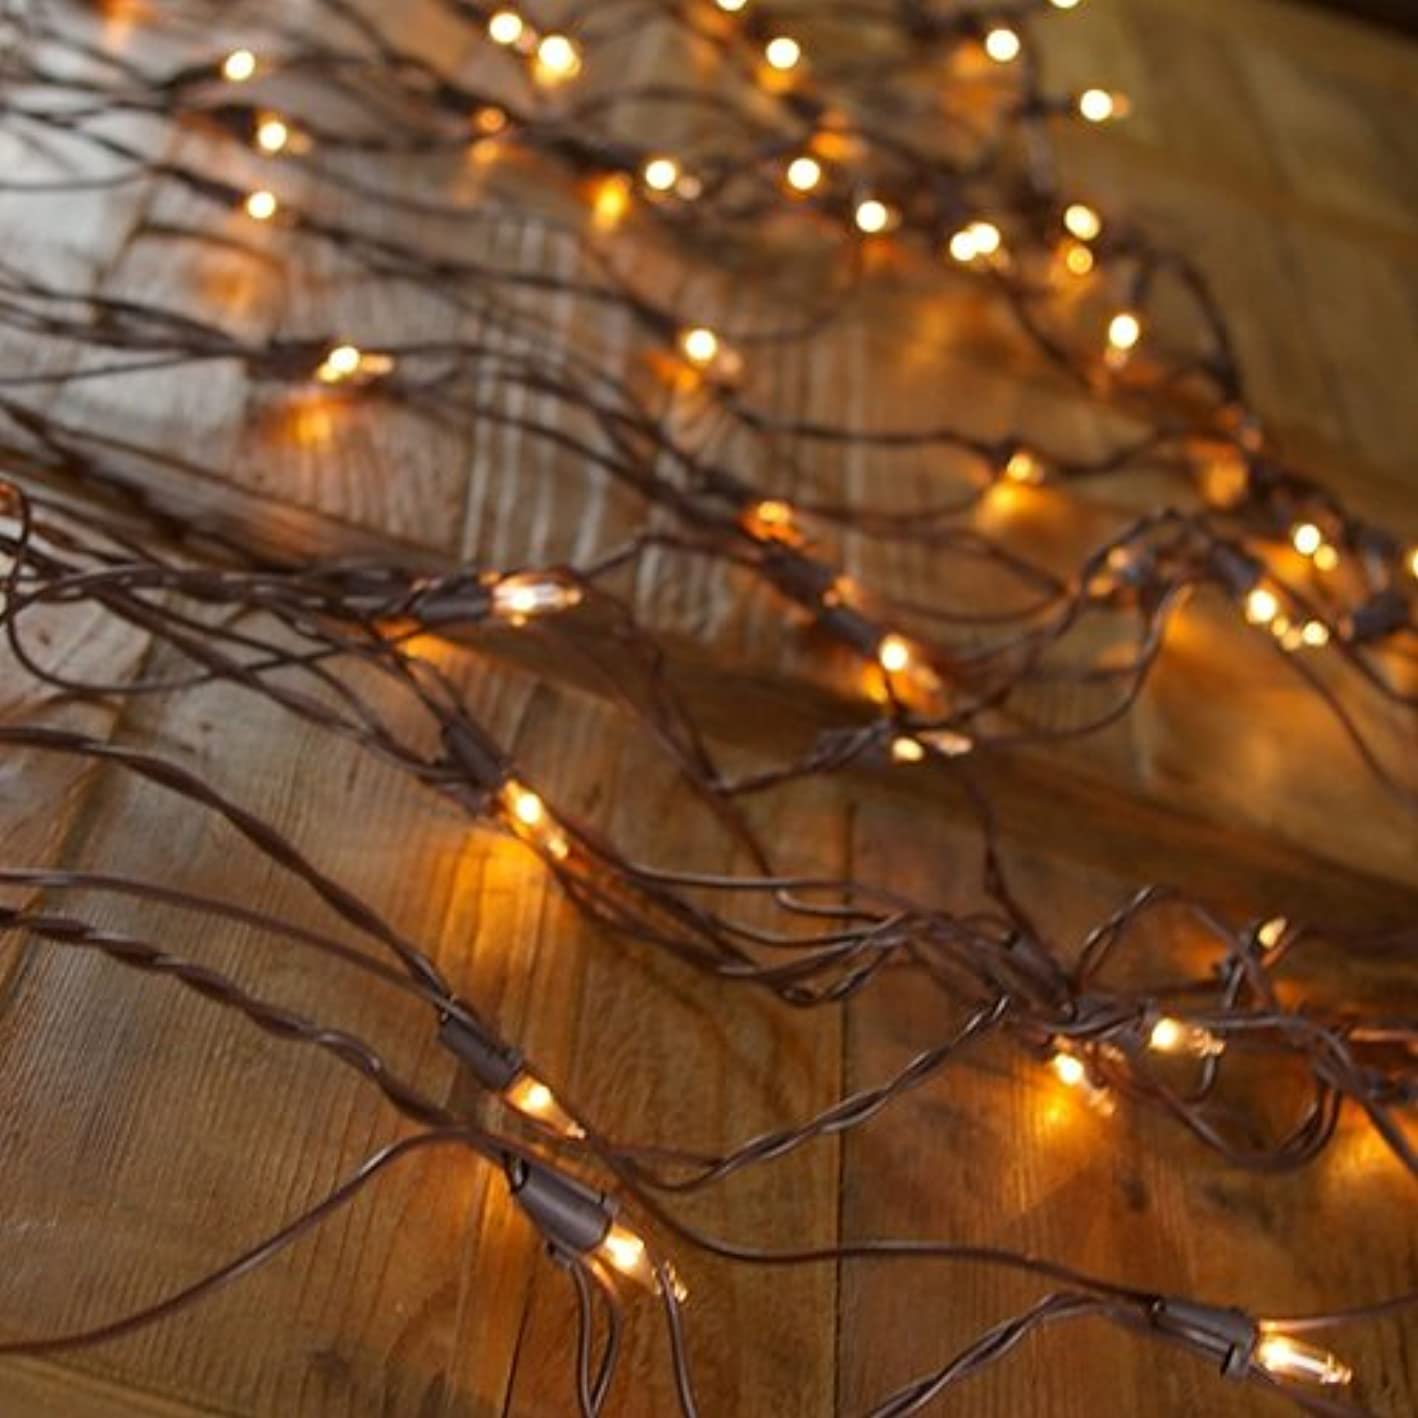 Net Light with Brown Wire, 150 Clear Lights (4 x 6) - Christmas/Wedding Style Tree Trunk Wrap